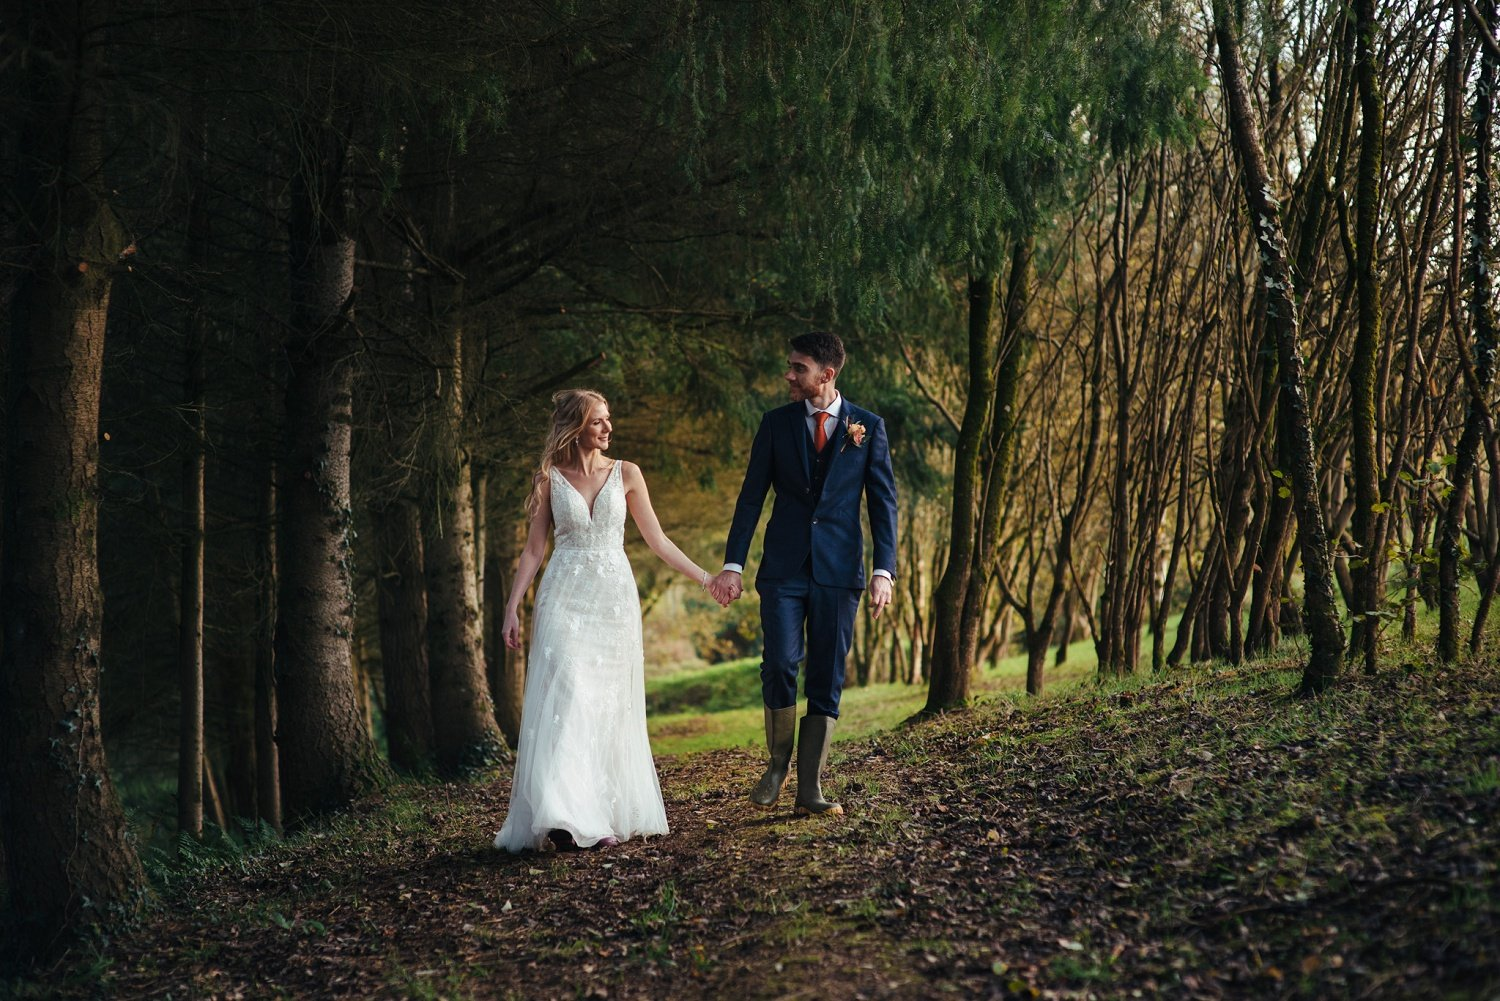 Brie and groom walk hand in hand on a forest path in the golden evening sunlight at Tree Top Escape, Devon